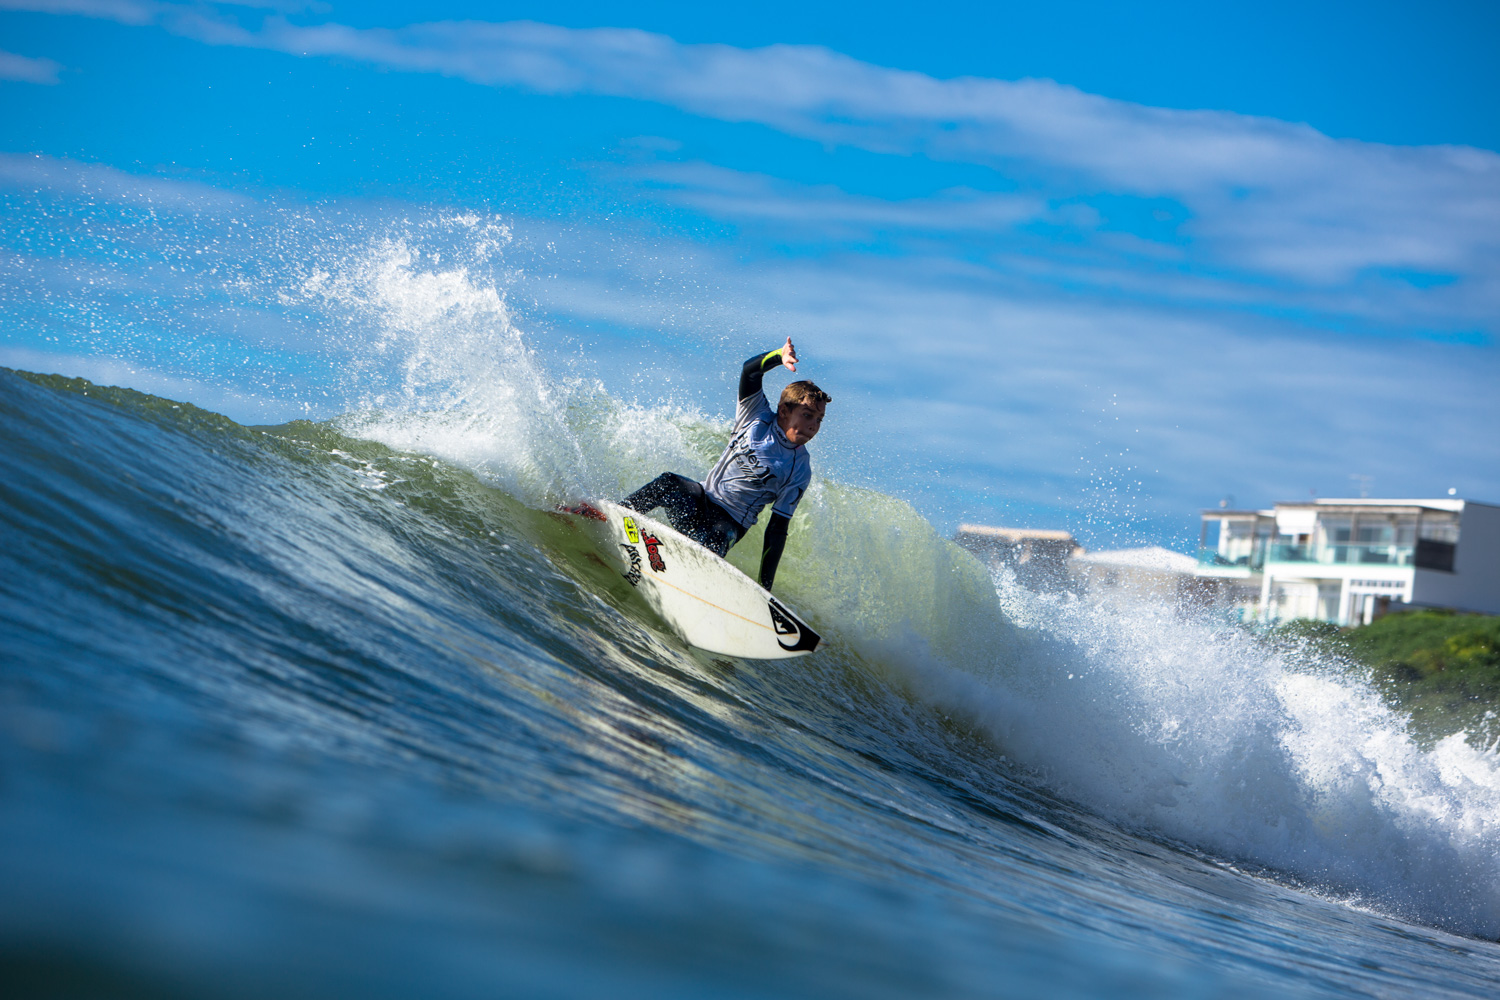 Watch 4 days of surfing action from the 2014 Hurley SA Junior Champs in these highlights videos